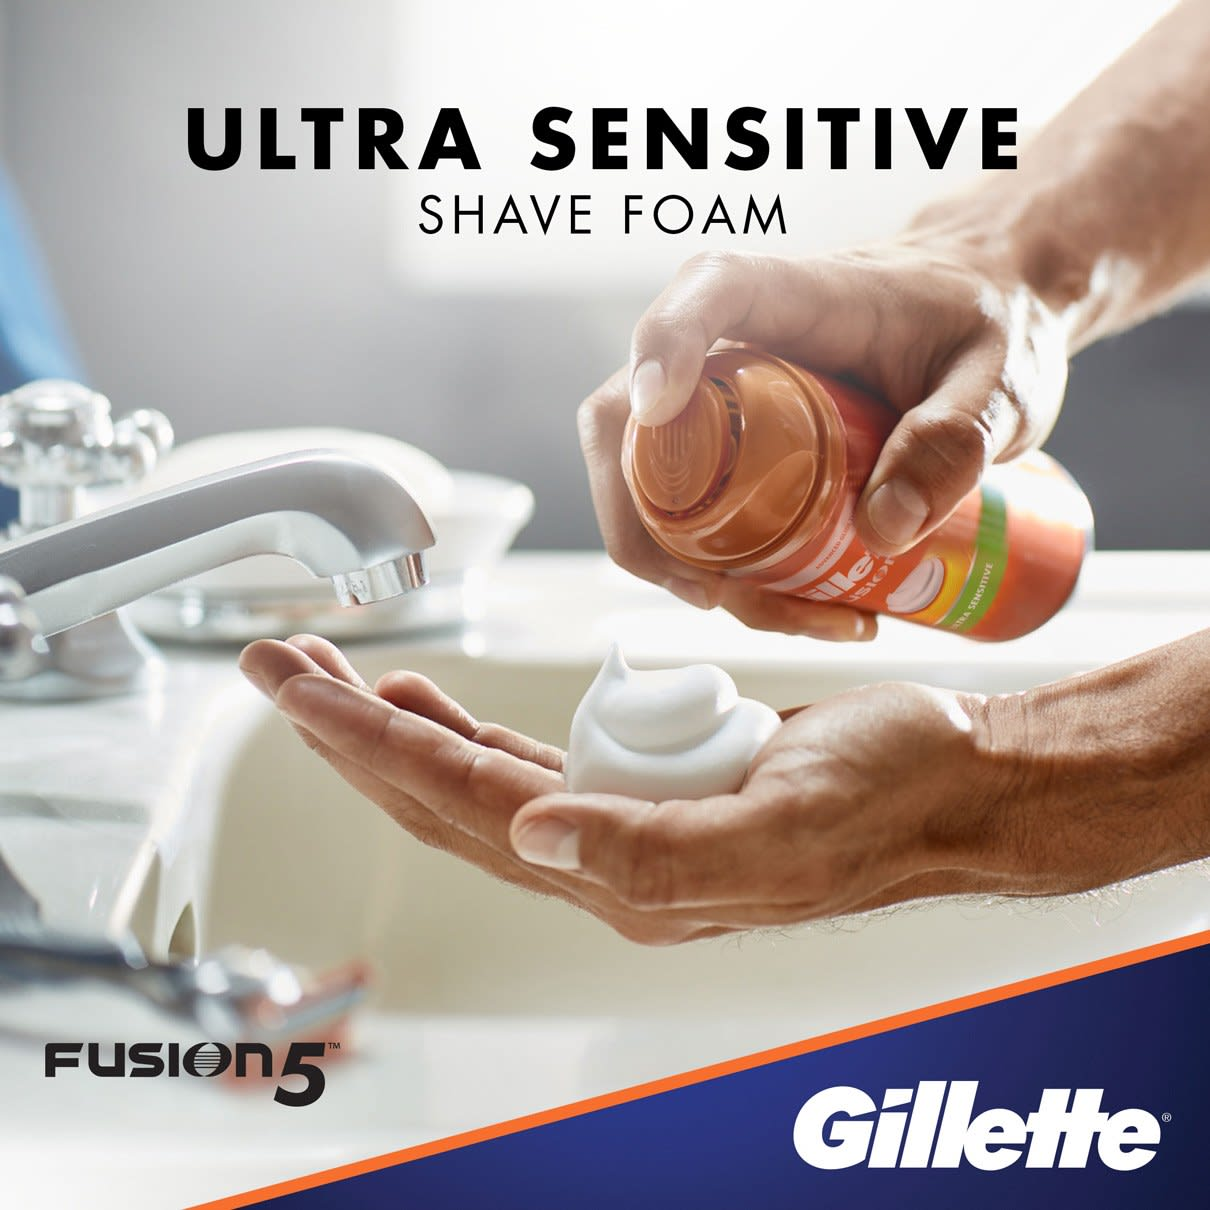 Ultra Sensitive Shave Foam I  Gillette Fusion5 Ultra Sensitive Shave Foam